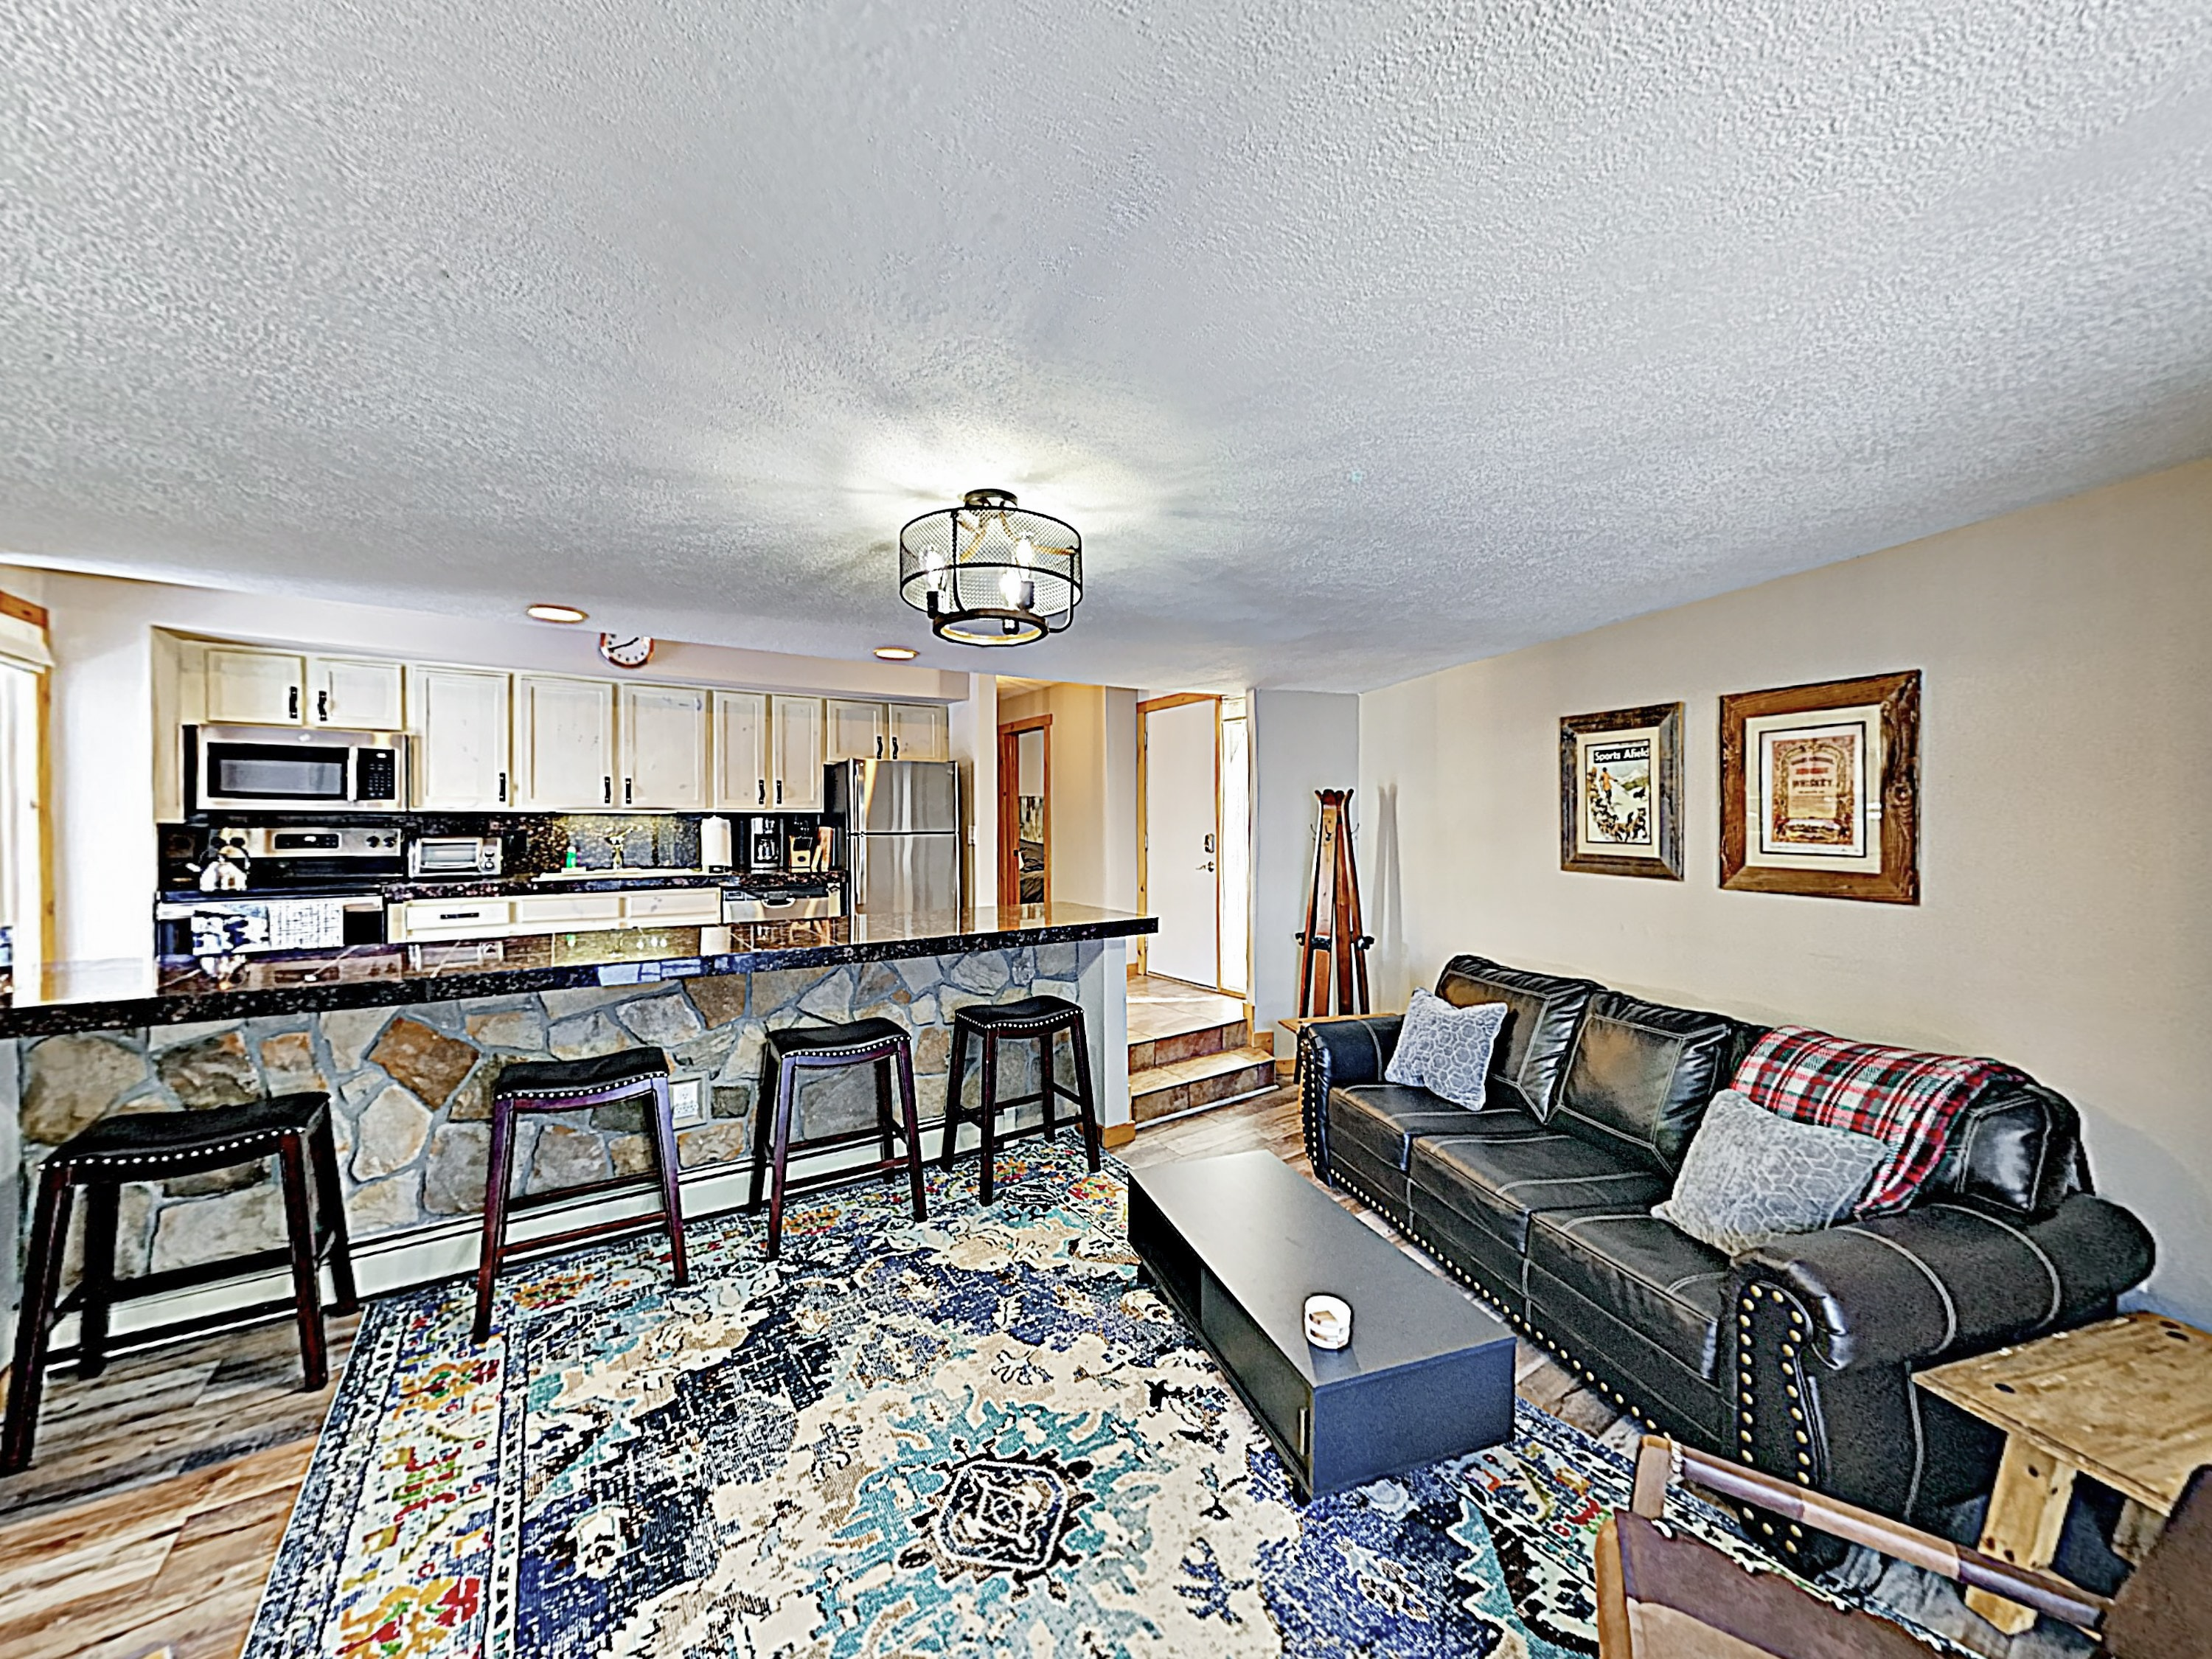 Welcome to Breckenridge! This condo is professionally managed by TurnKey Vacation Rentals.